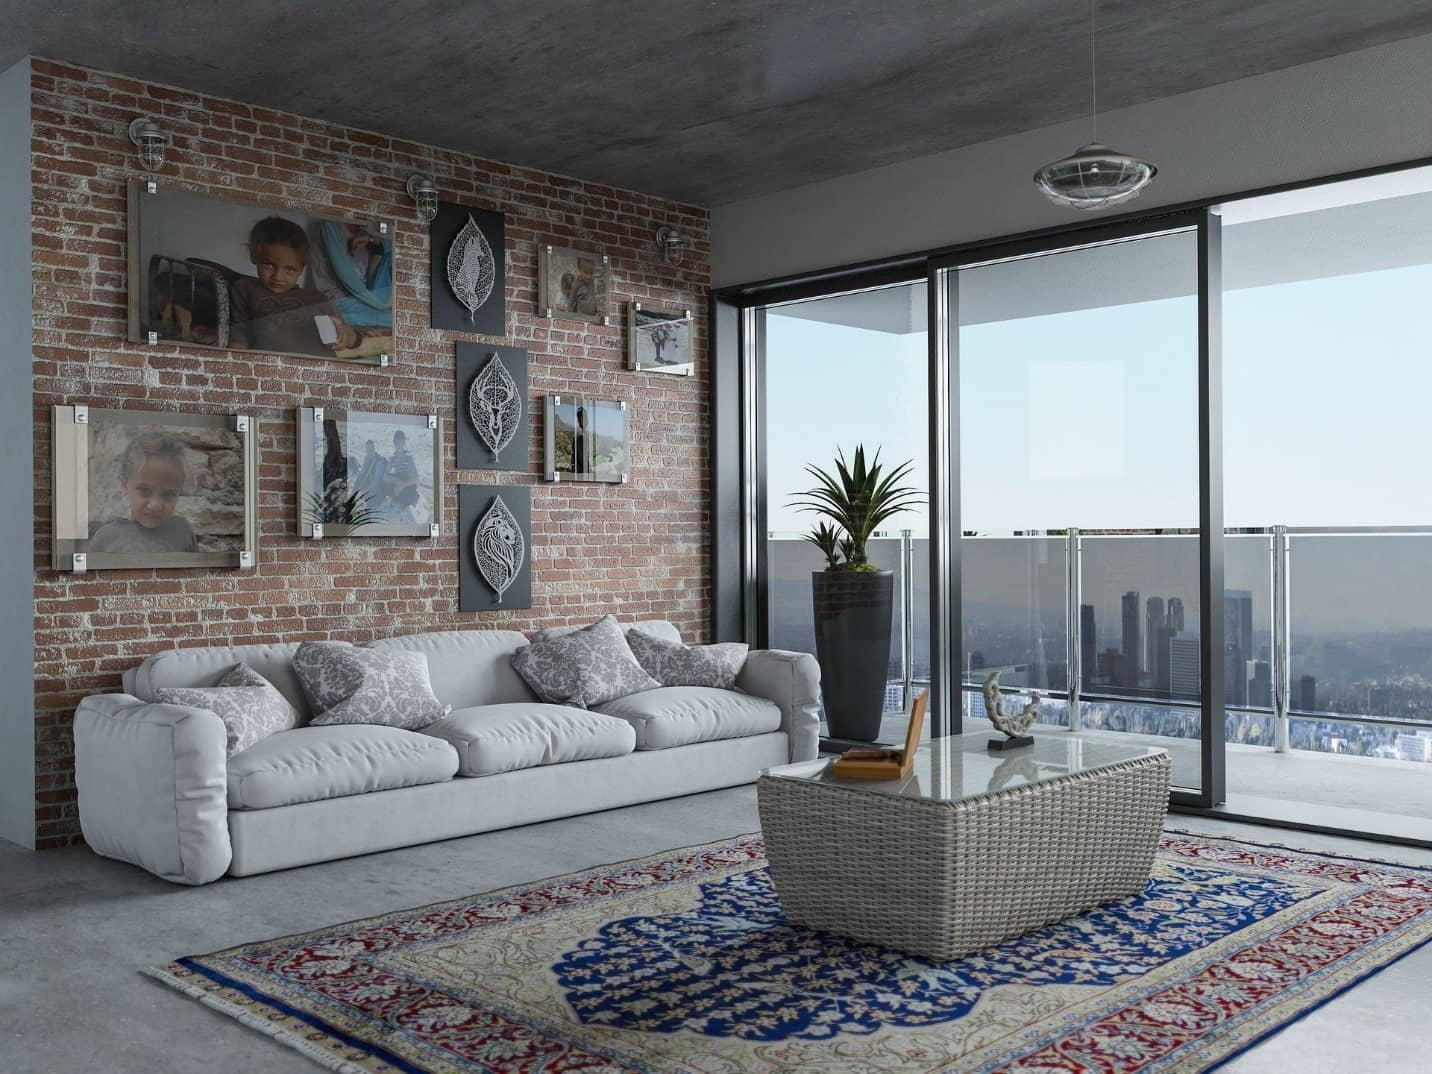 The Benefits Of Smart Furniture For Smart Home